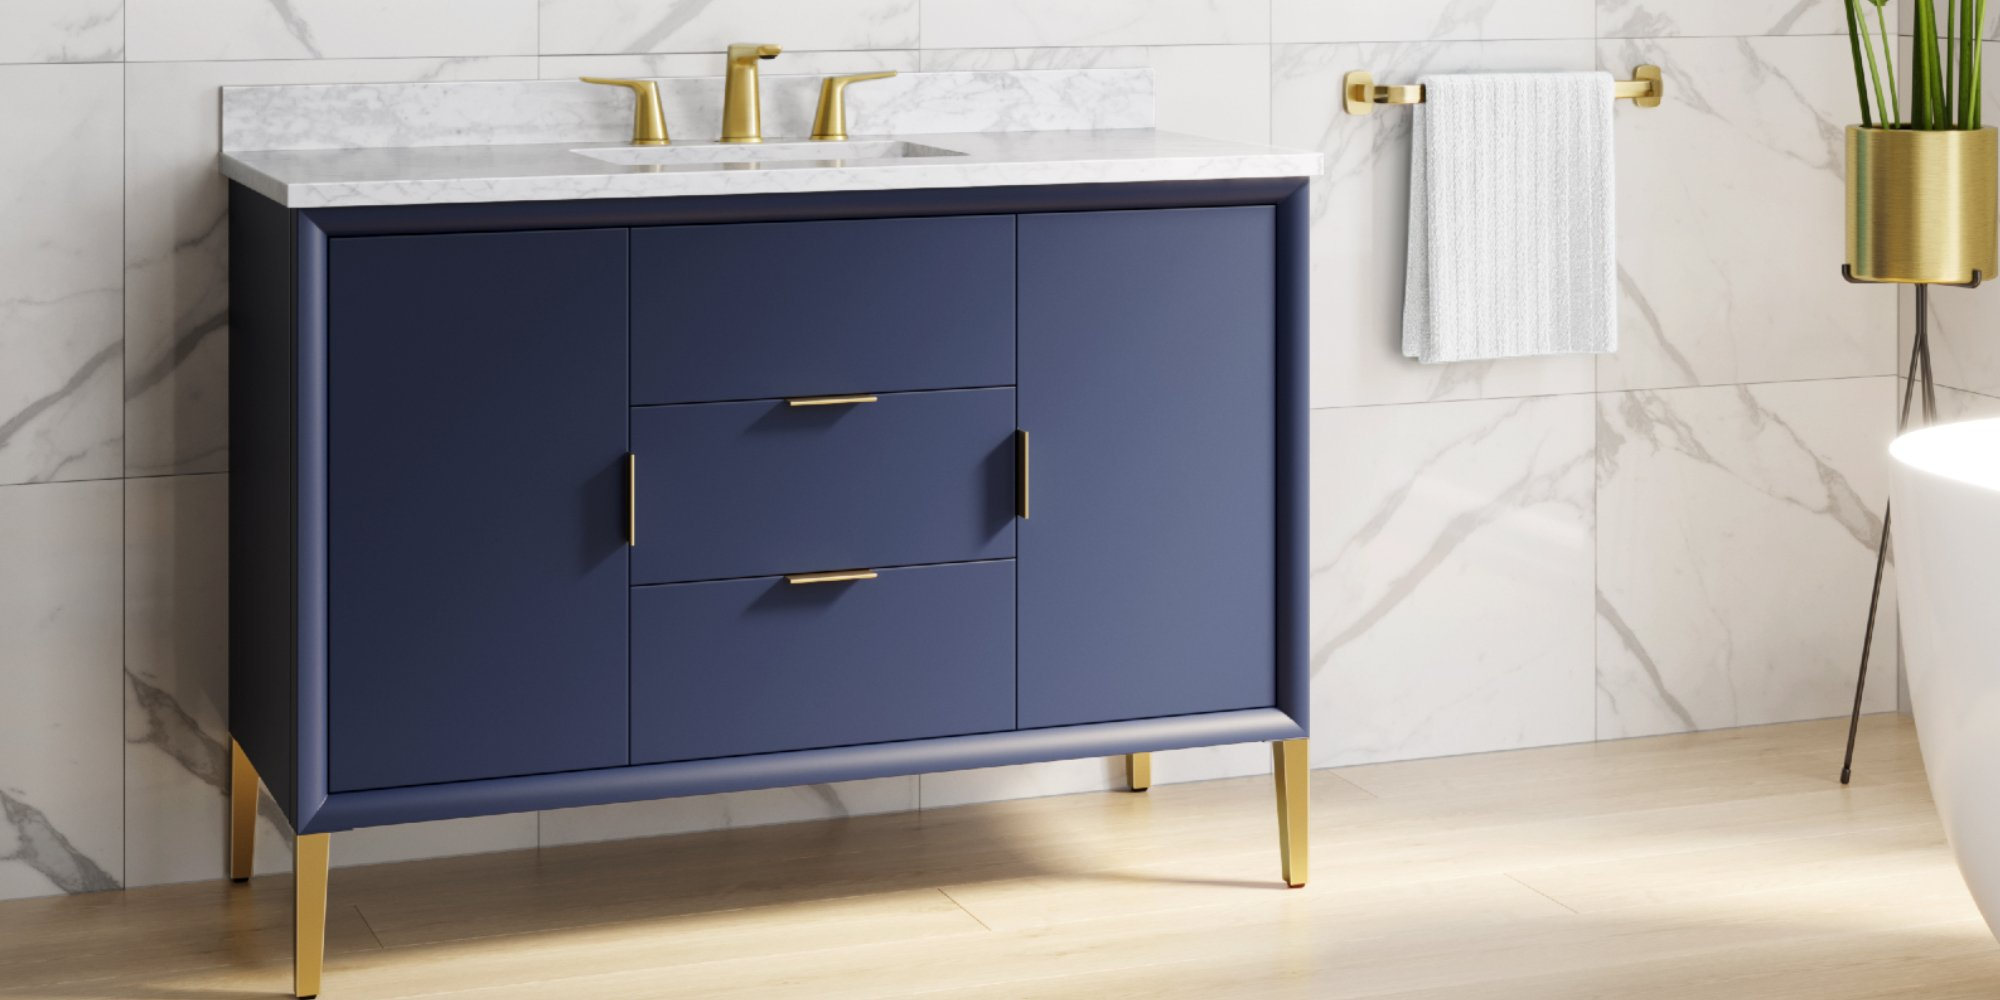 2020 bathroom design trend inspiration featuring the blue Arya vanity from Frederick York